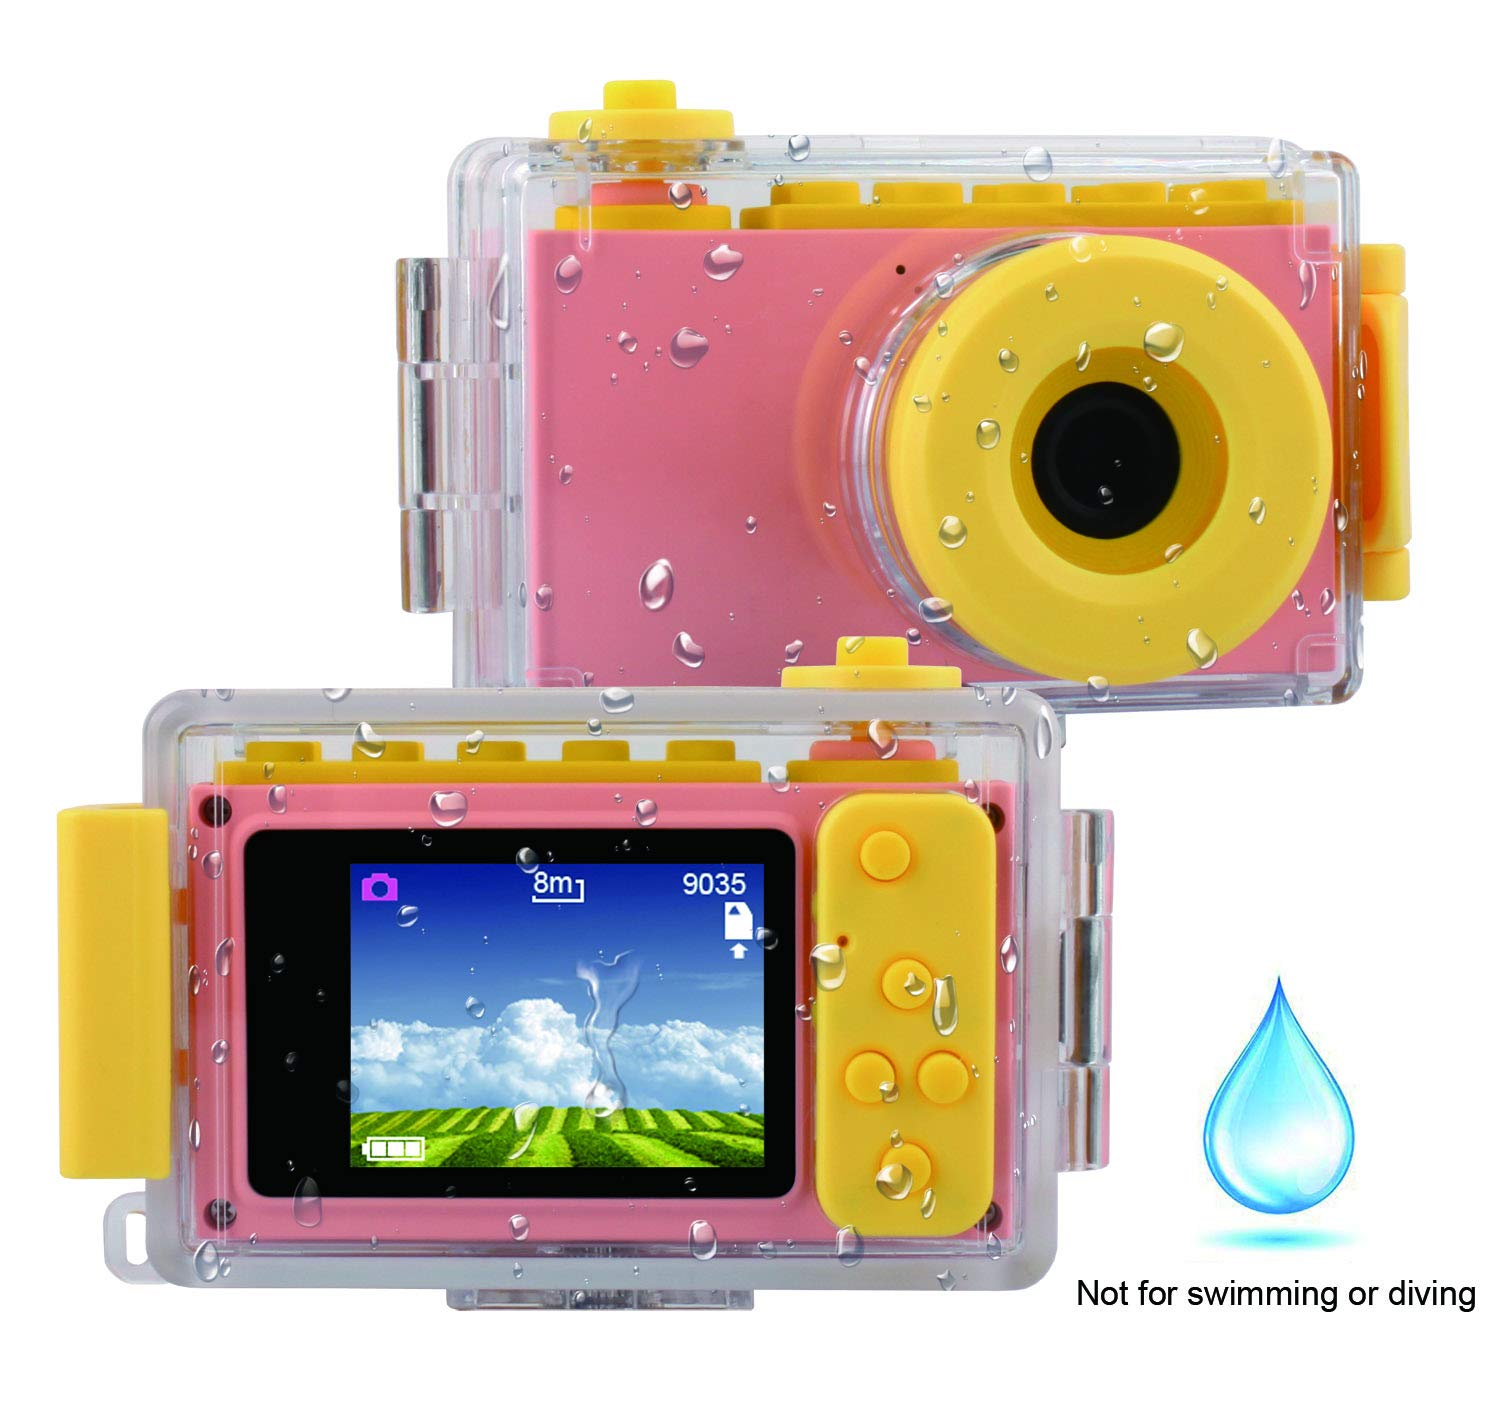 MAGENDARA Kids Digital Camera HD 1080P Children Camera with 2.0 Inch Screen Toy Camera for Boys Girls Birthday with Waterproof Case-Pink